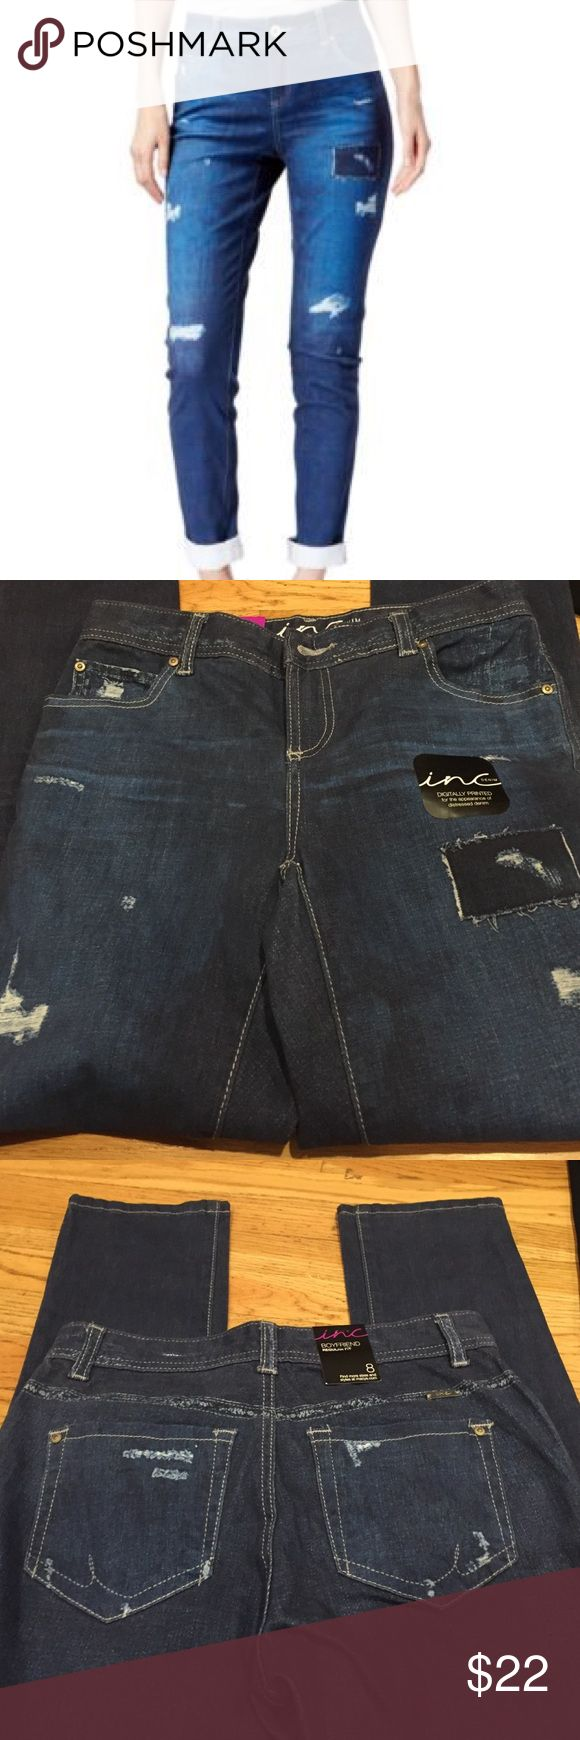 "Inc Boyfriend Jeans Regular Fit Distressed look Regular Fit  98% cotton 2% spandex  Brand New but no tags except the tag that says fit and size   40"" length  inseam is 31"" rise is 9""  Across the top laying flat is 14"" INC International Concepts Jeans Boyfriend"